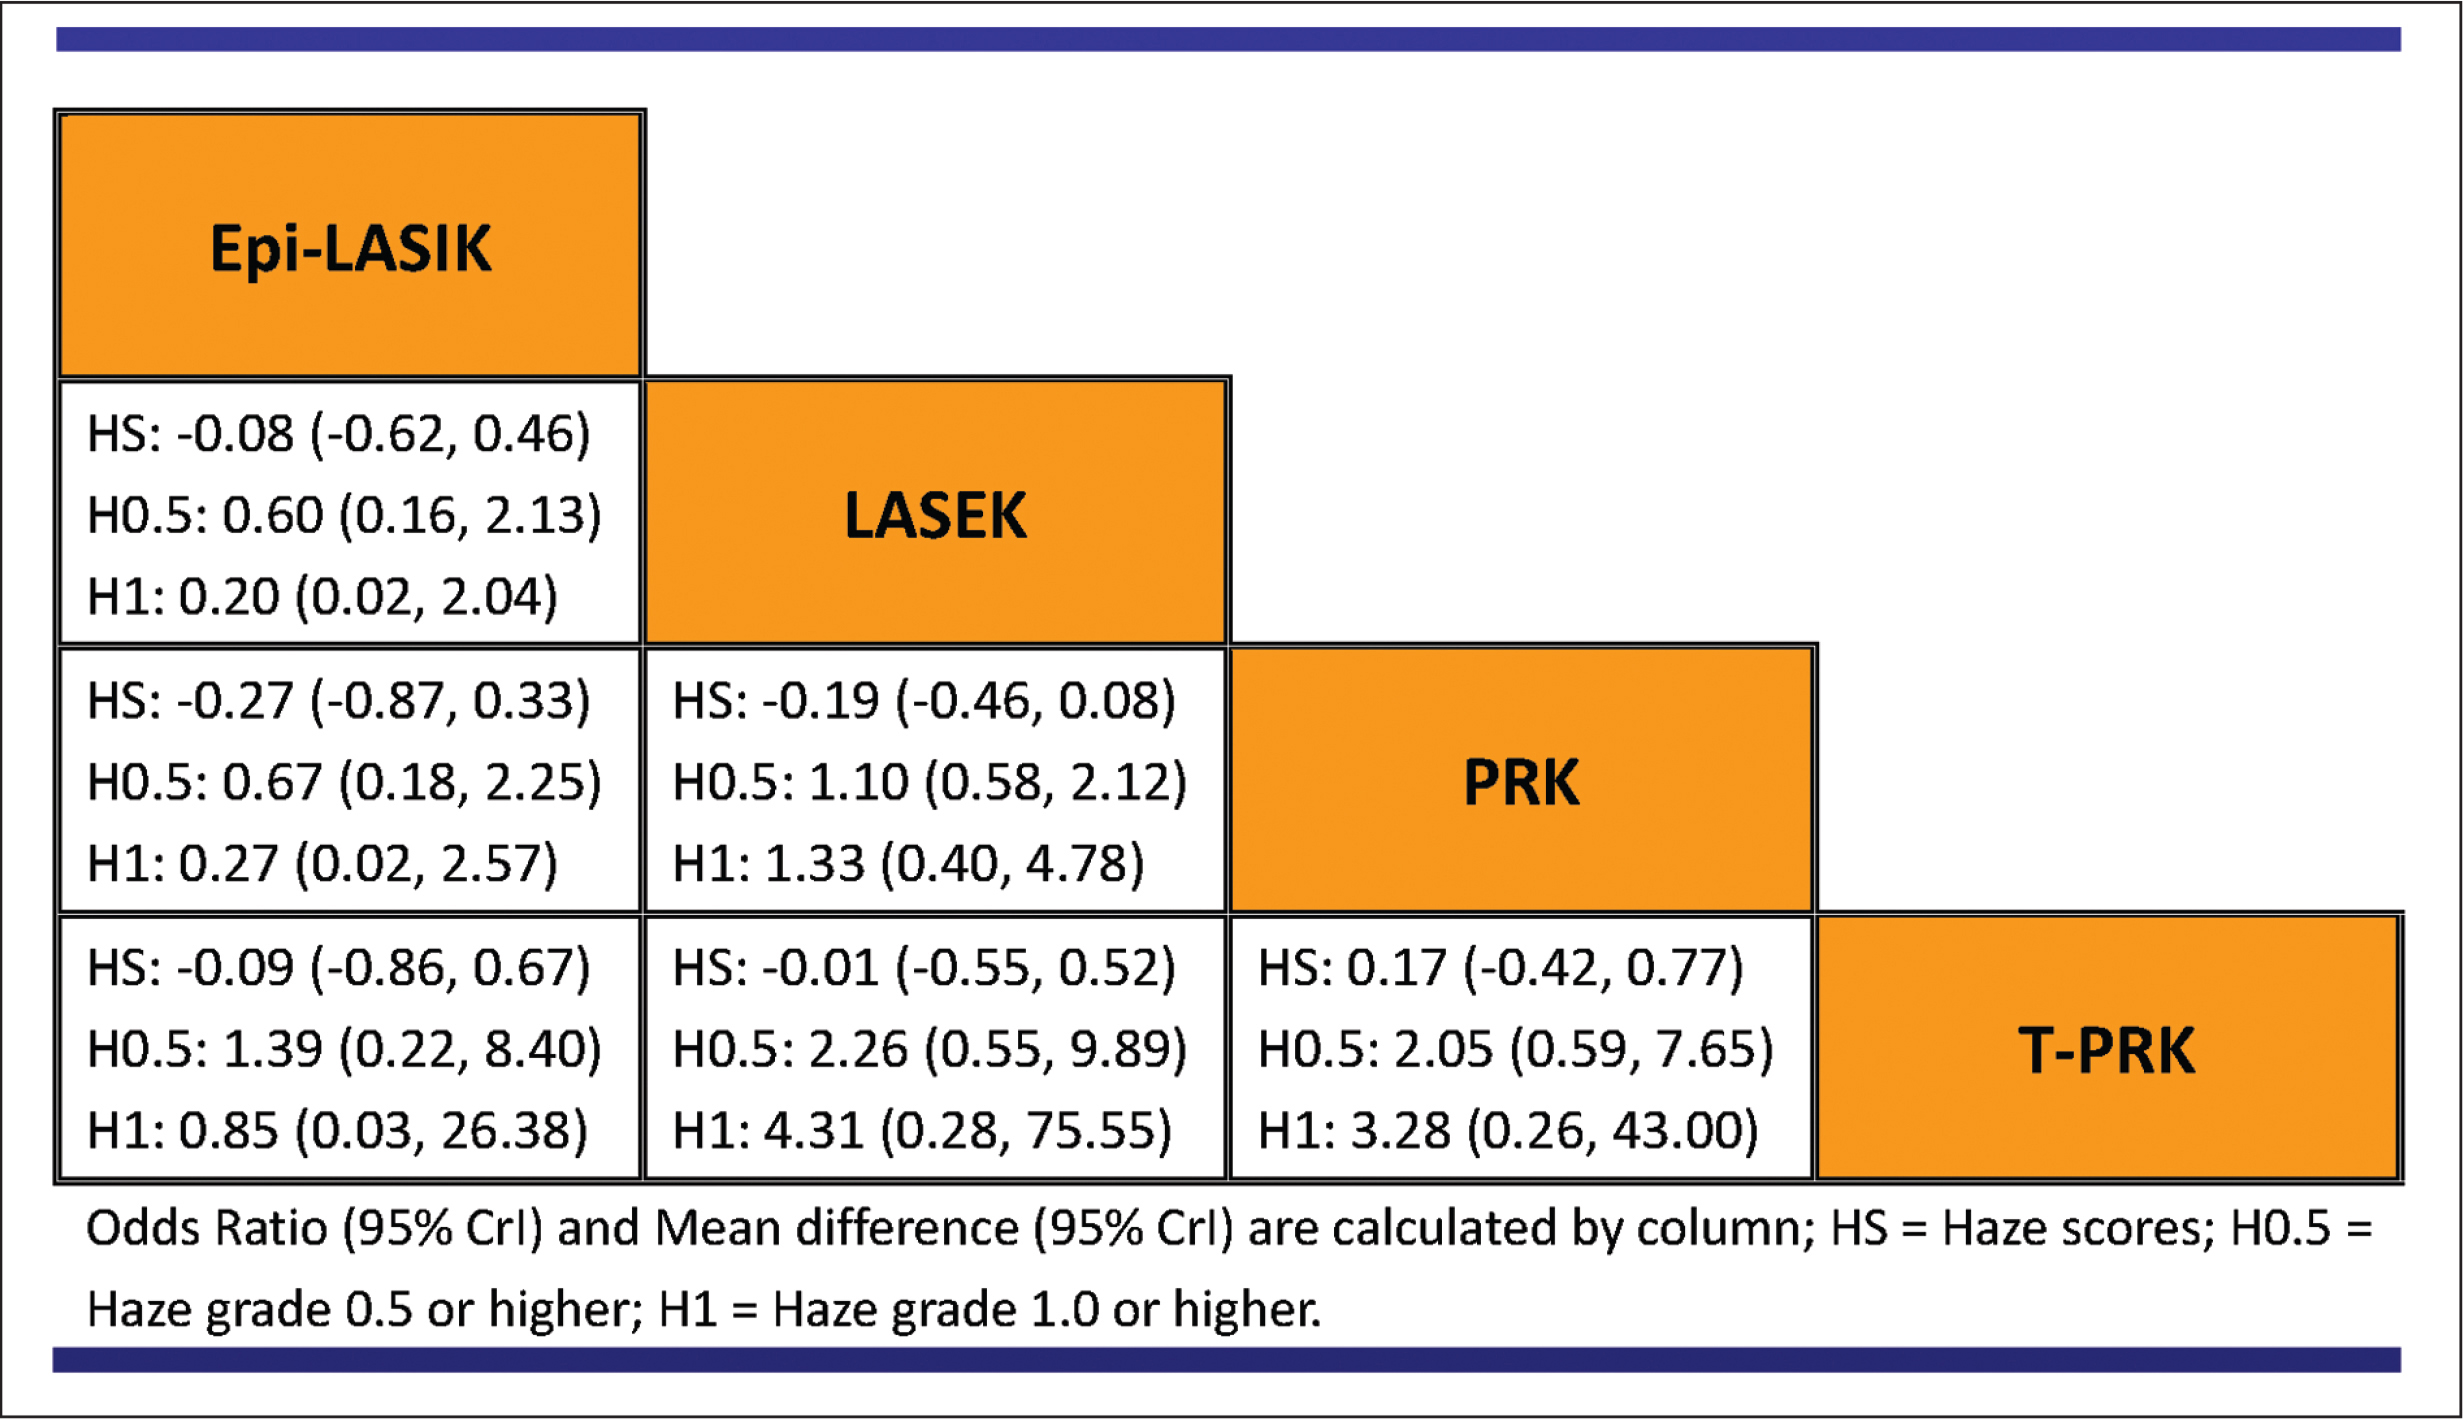 Summary comparisons for postoperative haze of all treatments derived from the network meta-analysis. epi-LASIK = epithelial laser in situ keratomileusis; LASEK = laser epithelial keratectomy; PRK = photorefractive keratectomy; T-PRK = transepithelial photorefractive keratectomy